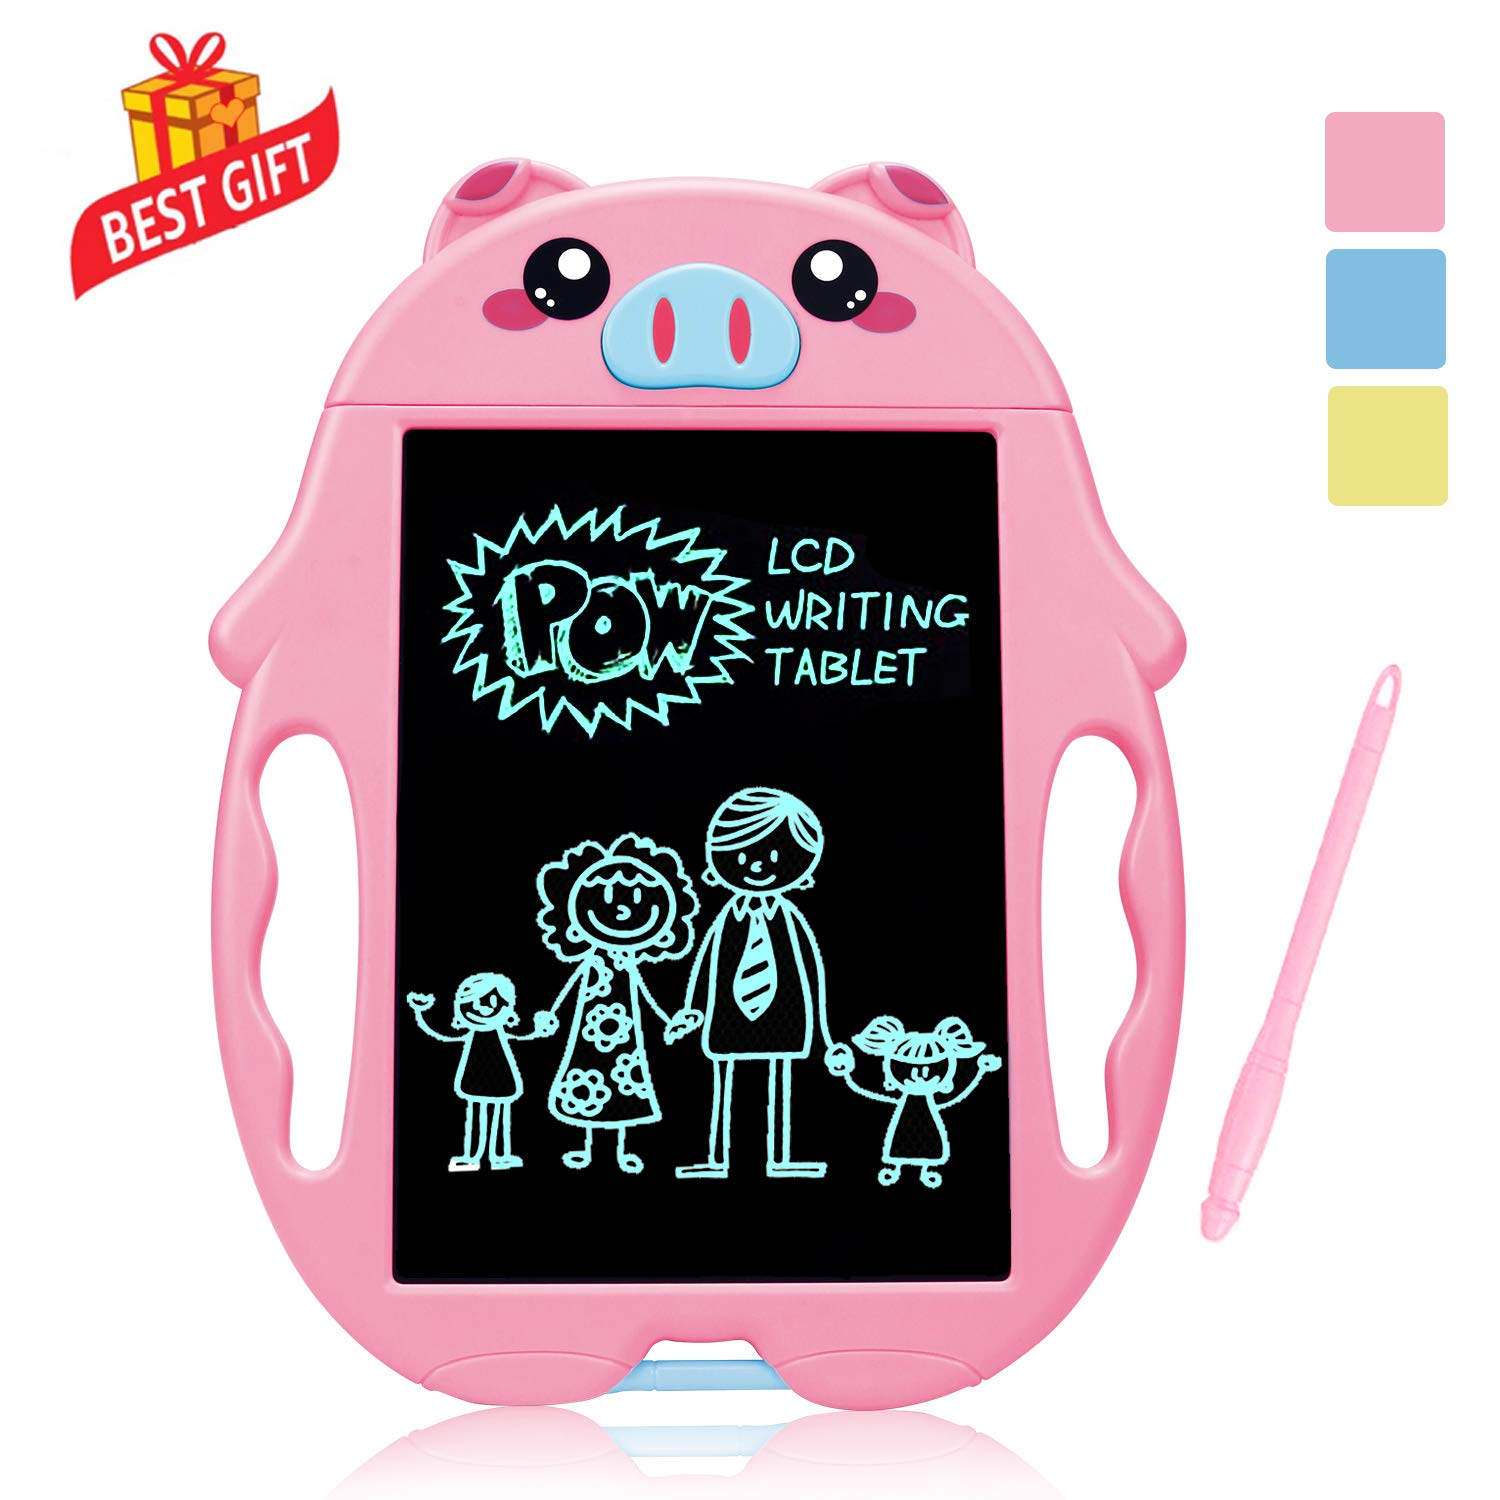 SLHFPX LOFEE Birthday Present for 2-6 Years Old Girl, Boogie Board Magna Doodle for Kids Best Gifts for 5-12 Year Old Boys Girls Writing Tablet Doodle Board for Kids Toddlers Pink by SLHFPX